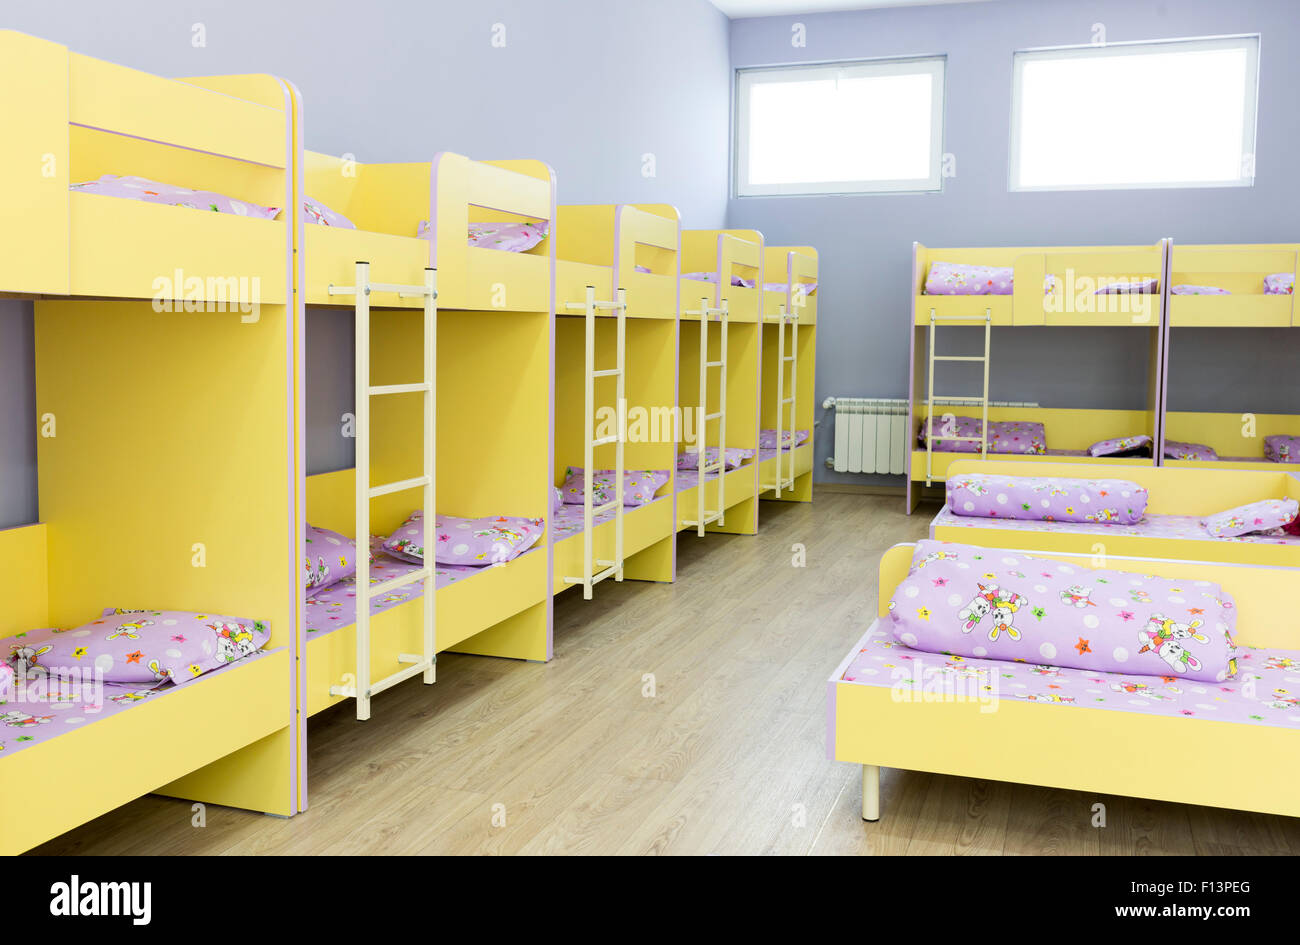 Modern Kindergarten Bedroom With Small Bunk Beds With Stairs For The Stock Photo Royalty Free